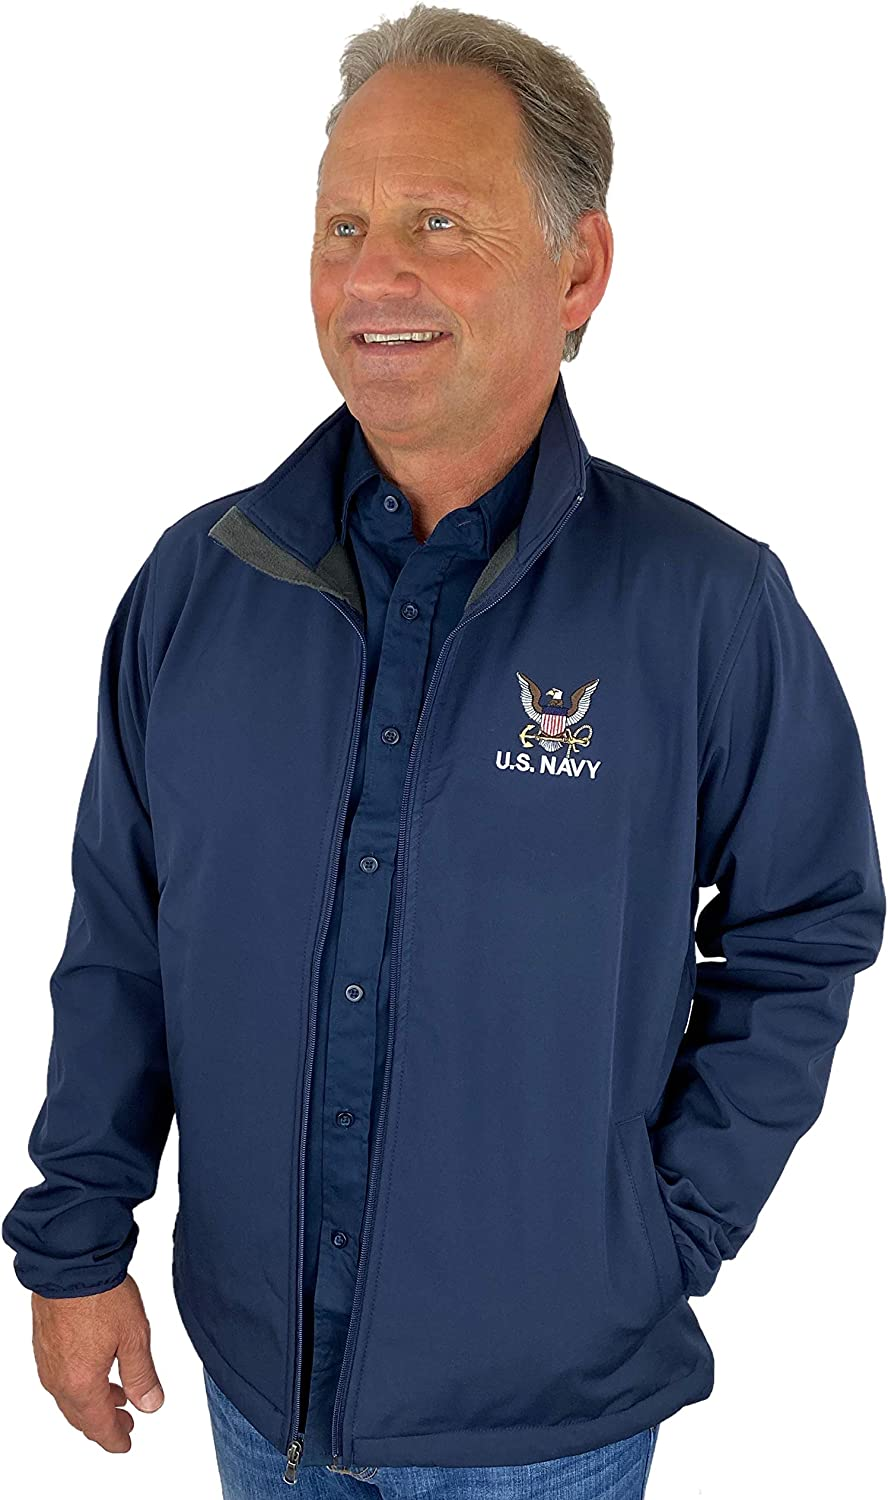 US Navy Full Zip Jacket Made In USA